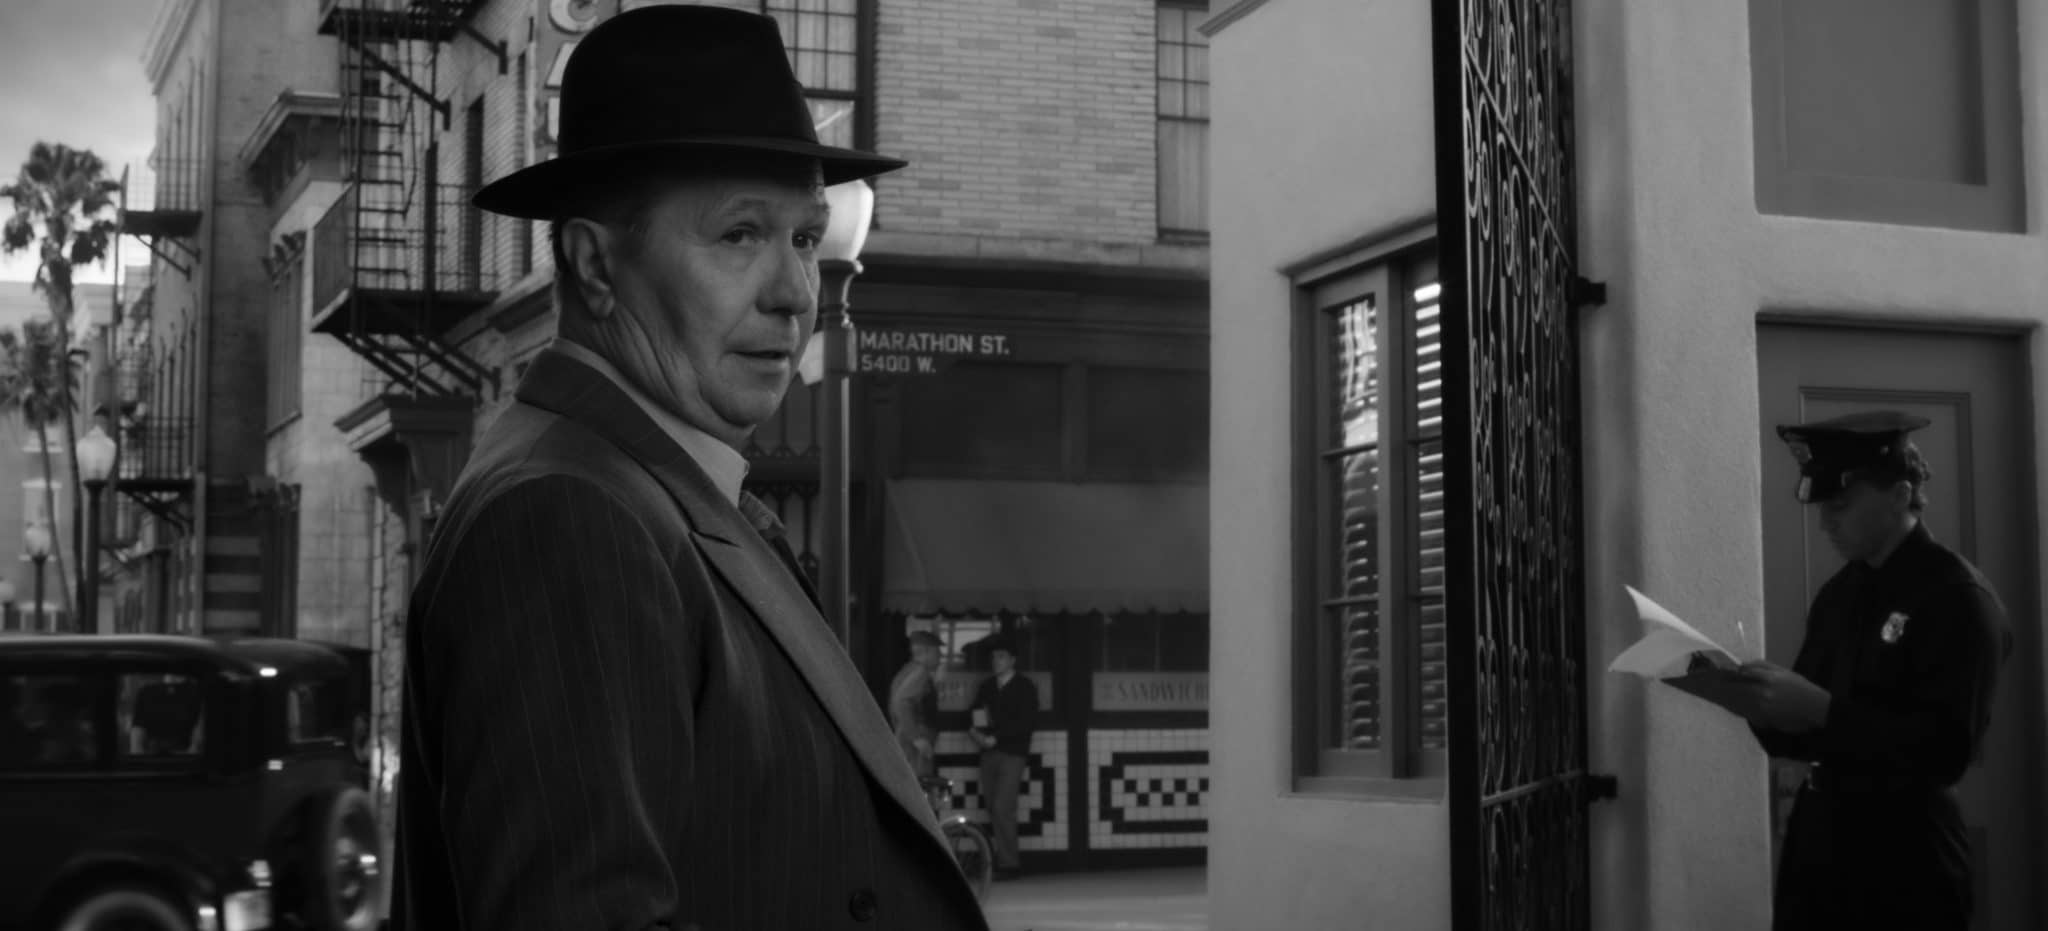 Gasry Oldman in the film Mank